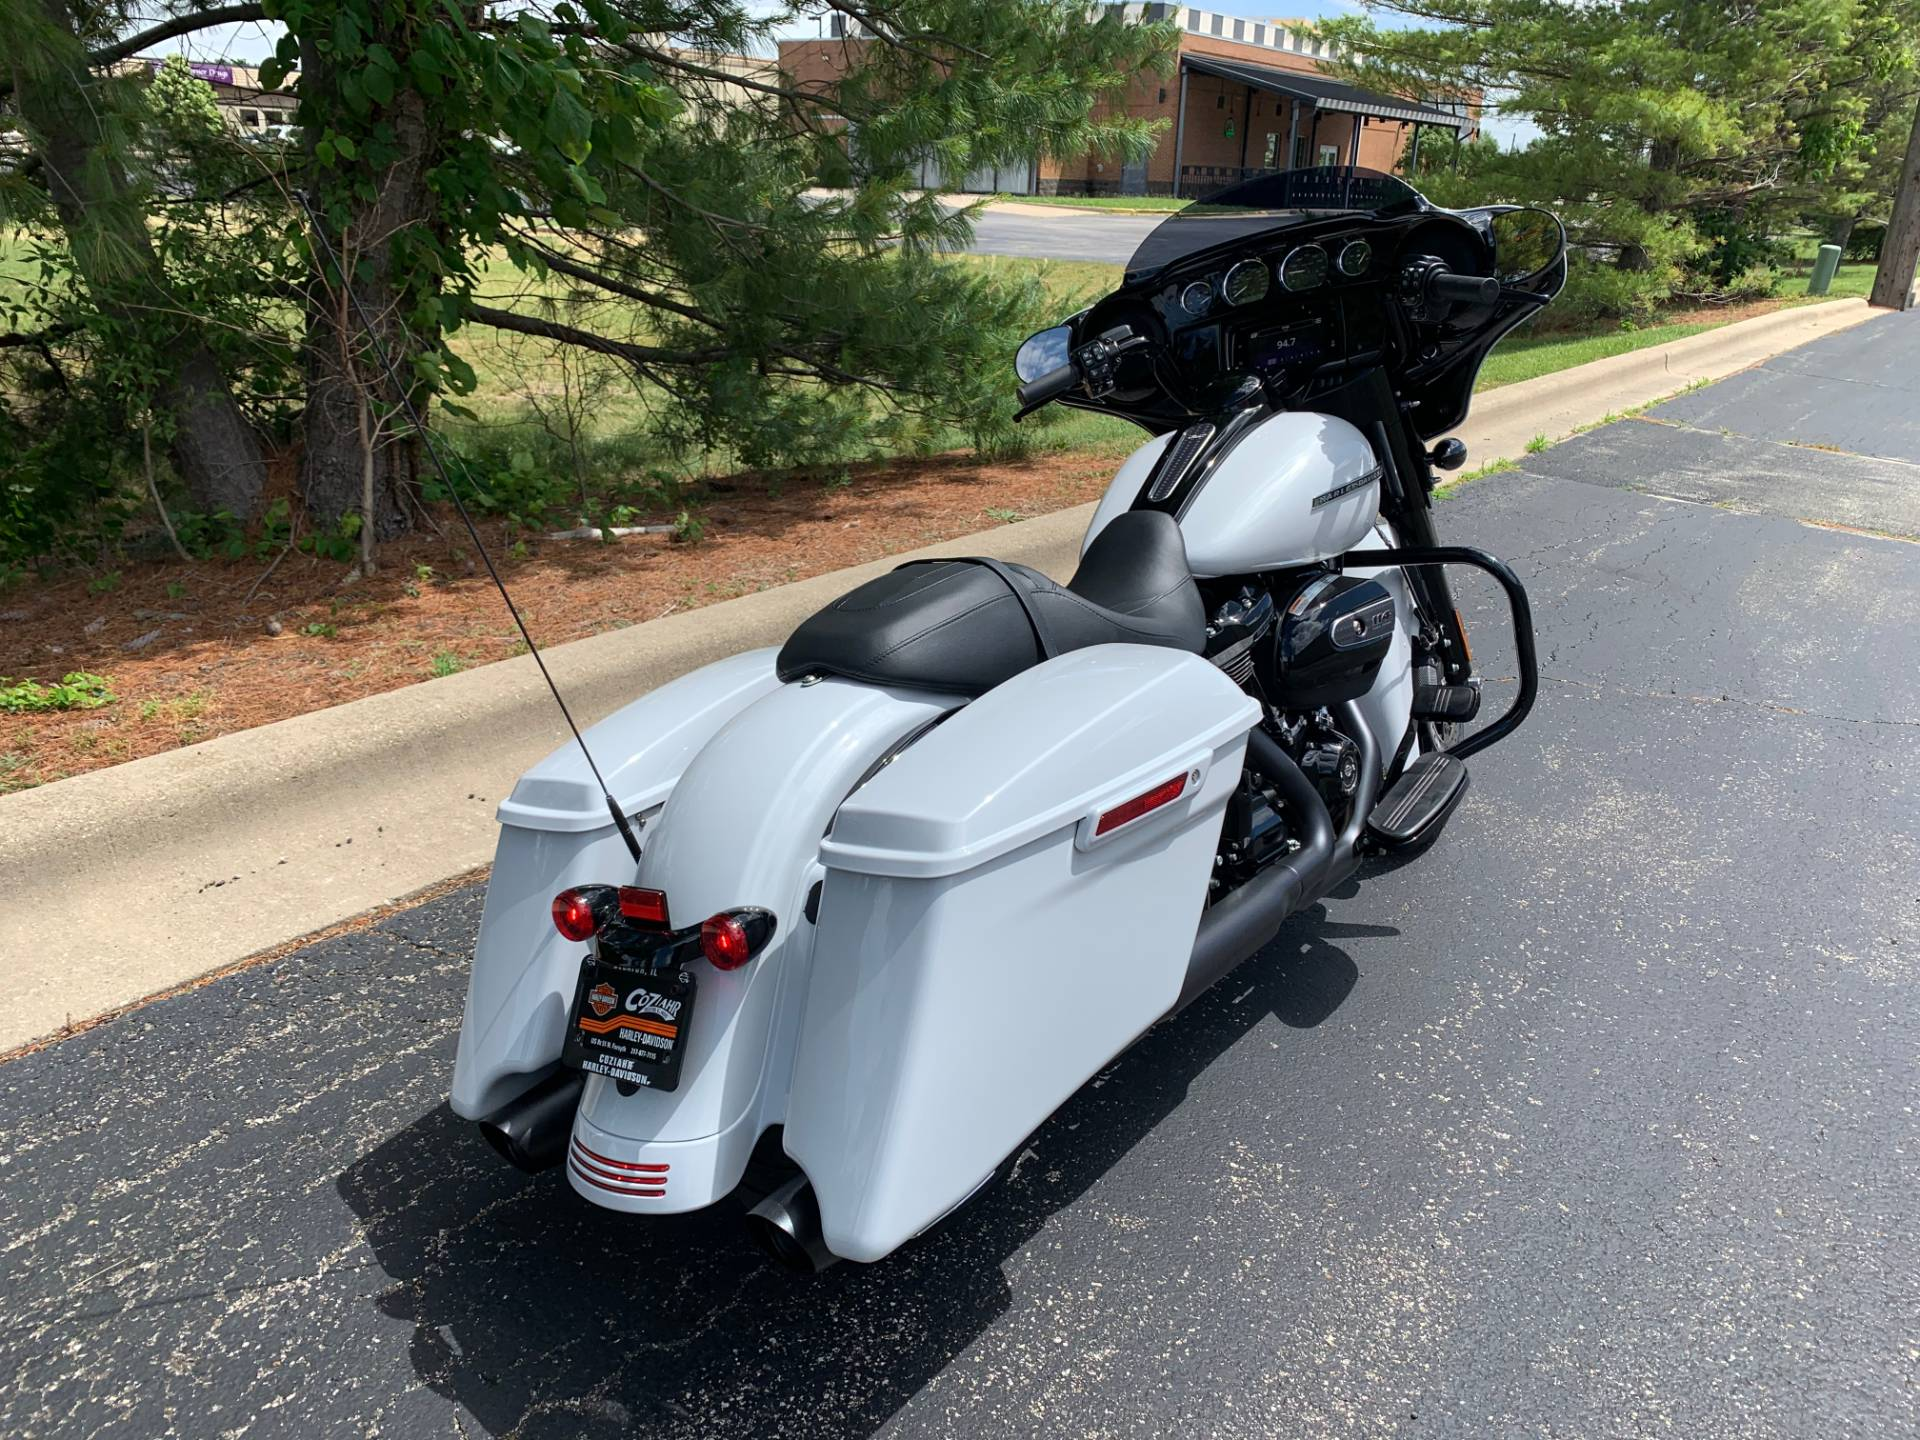 2020 Harley-Davidson Street Glide Special in Forsyth, Illinois - Photo 3